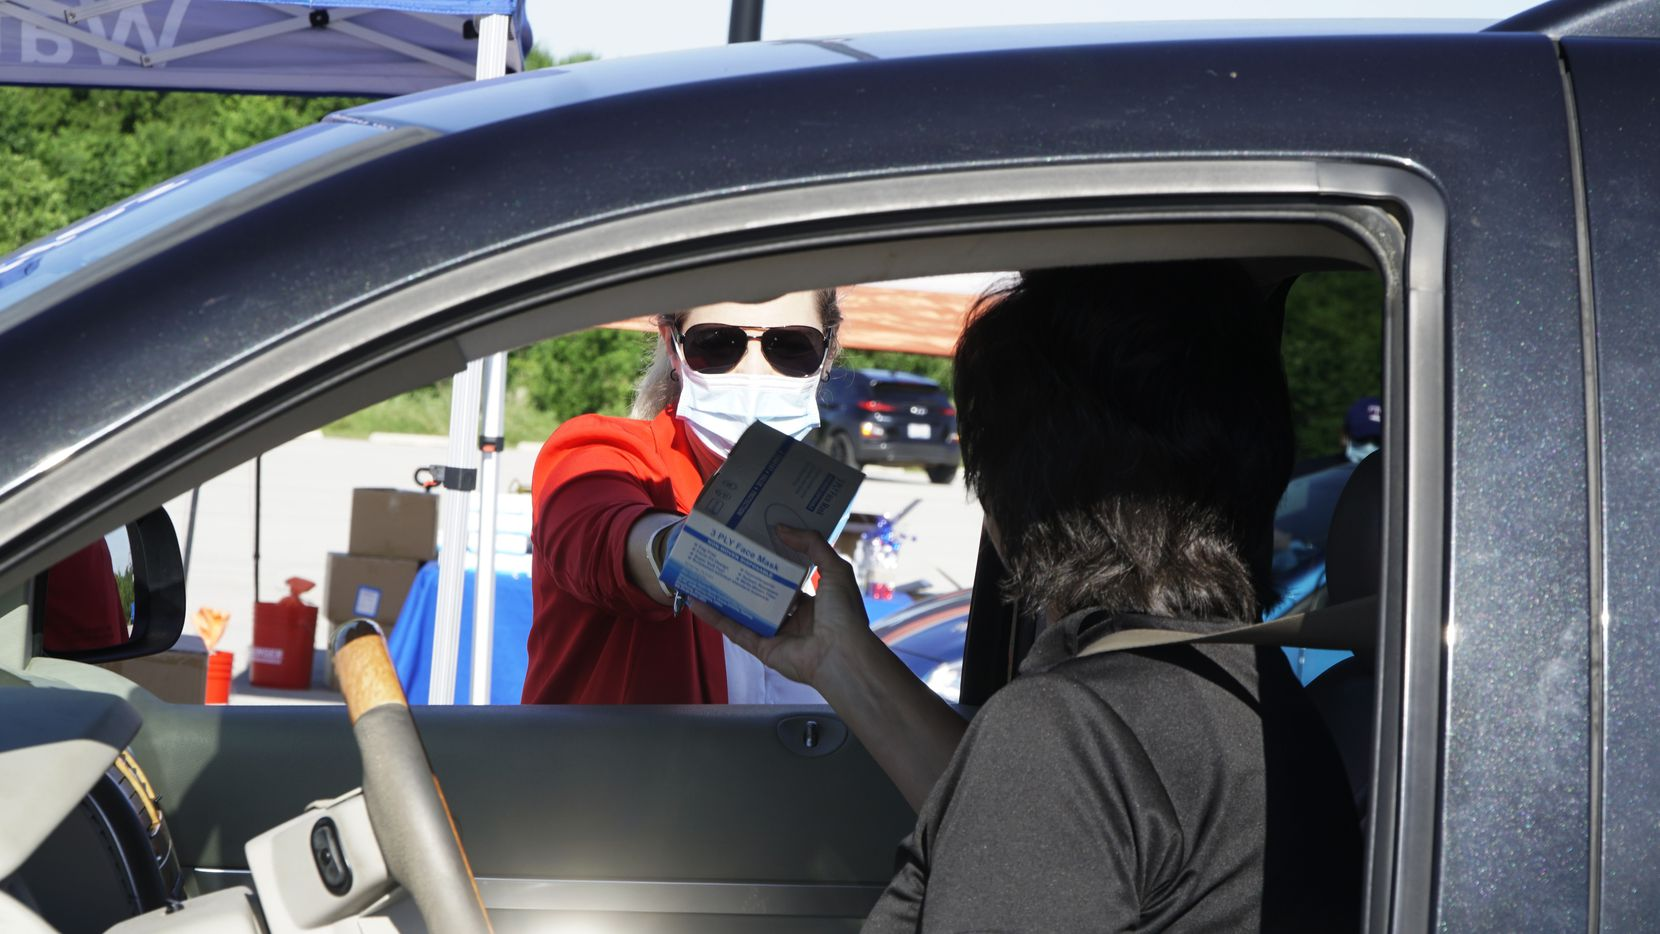 Aimee Rockhill-Carpenter assists someone during a free mask giveaway in the parking lot at Globe Life Park in Arlington, Texas on Wednesday, May 6, 2020. The City of Arlington in partnership with Tarrant County, the Texas Rangers, Greater Arlington Chamber of Commerce, and Arlington Convention and Visitors Bureau provided protective masks for free to employees at Arlington businesses and restaurants.